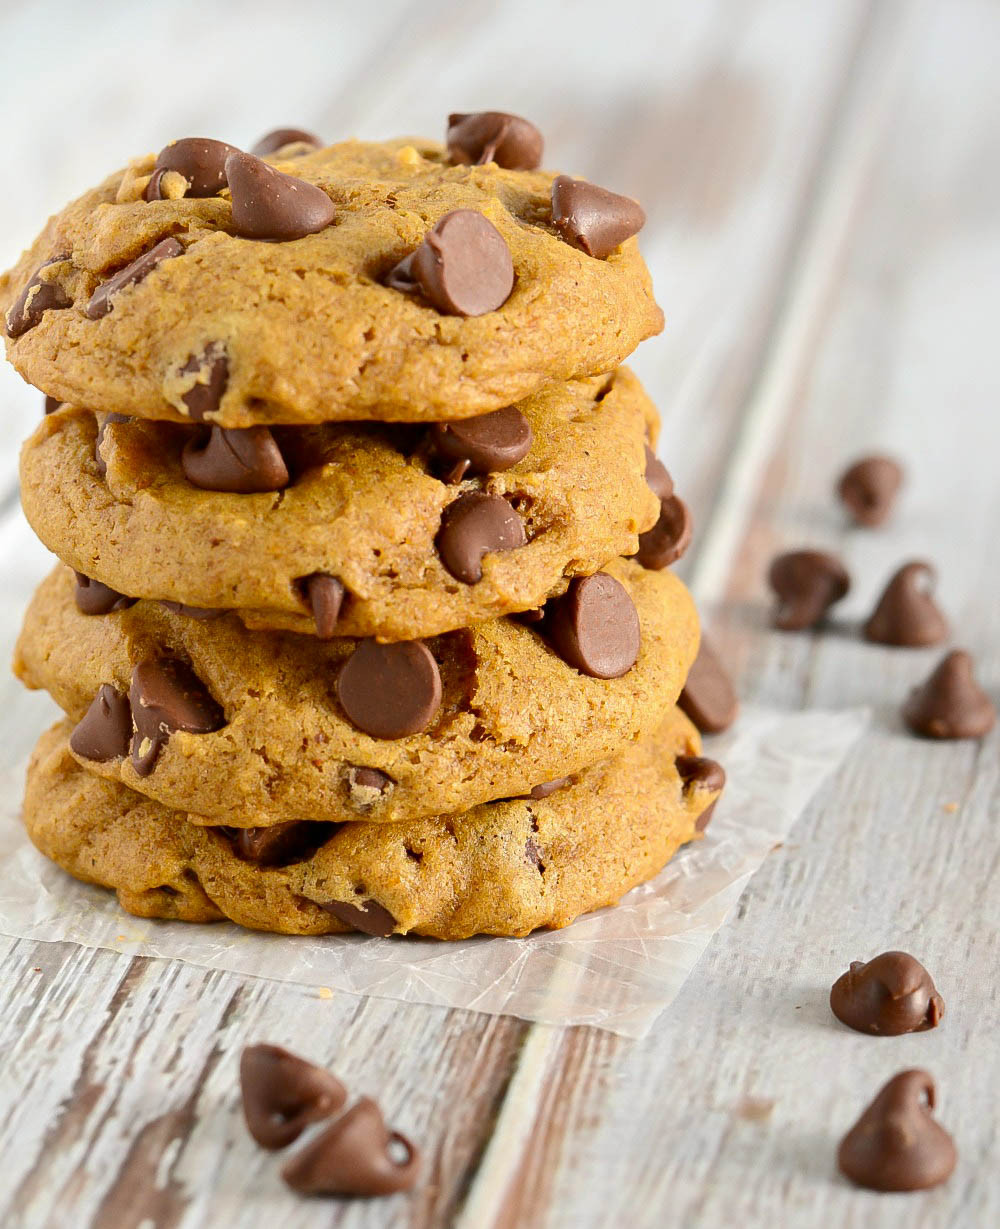 Chocolate Chip Pumpkin Cookies  How to Make Pumpkin Chocolate Chip Cookies Easy & Fluffy